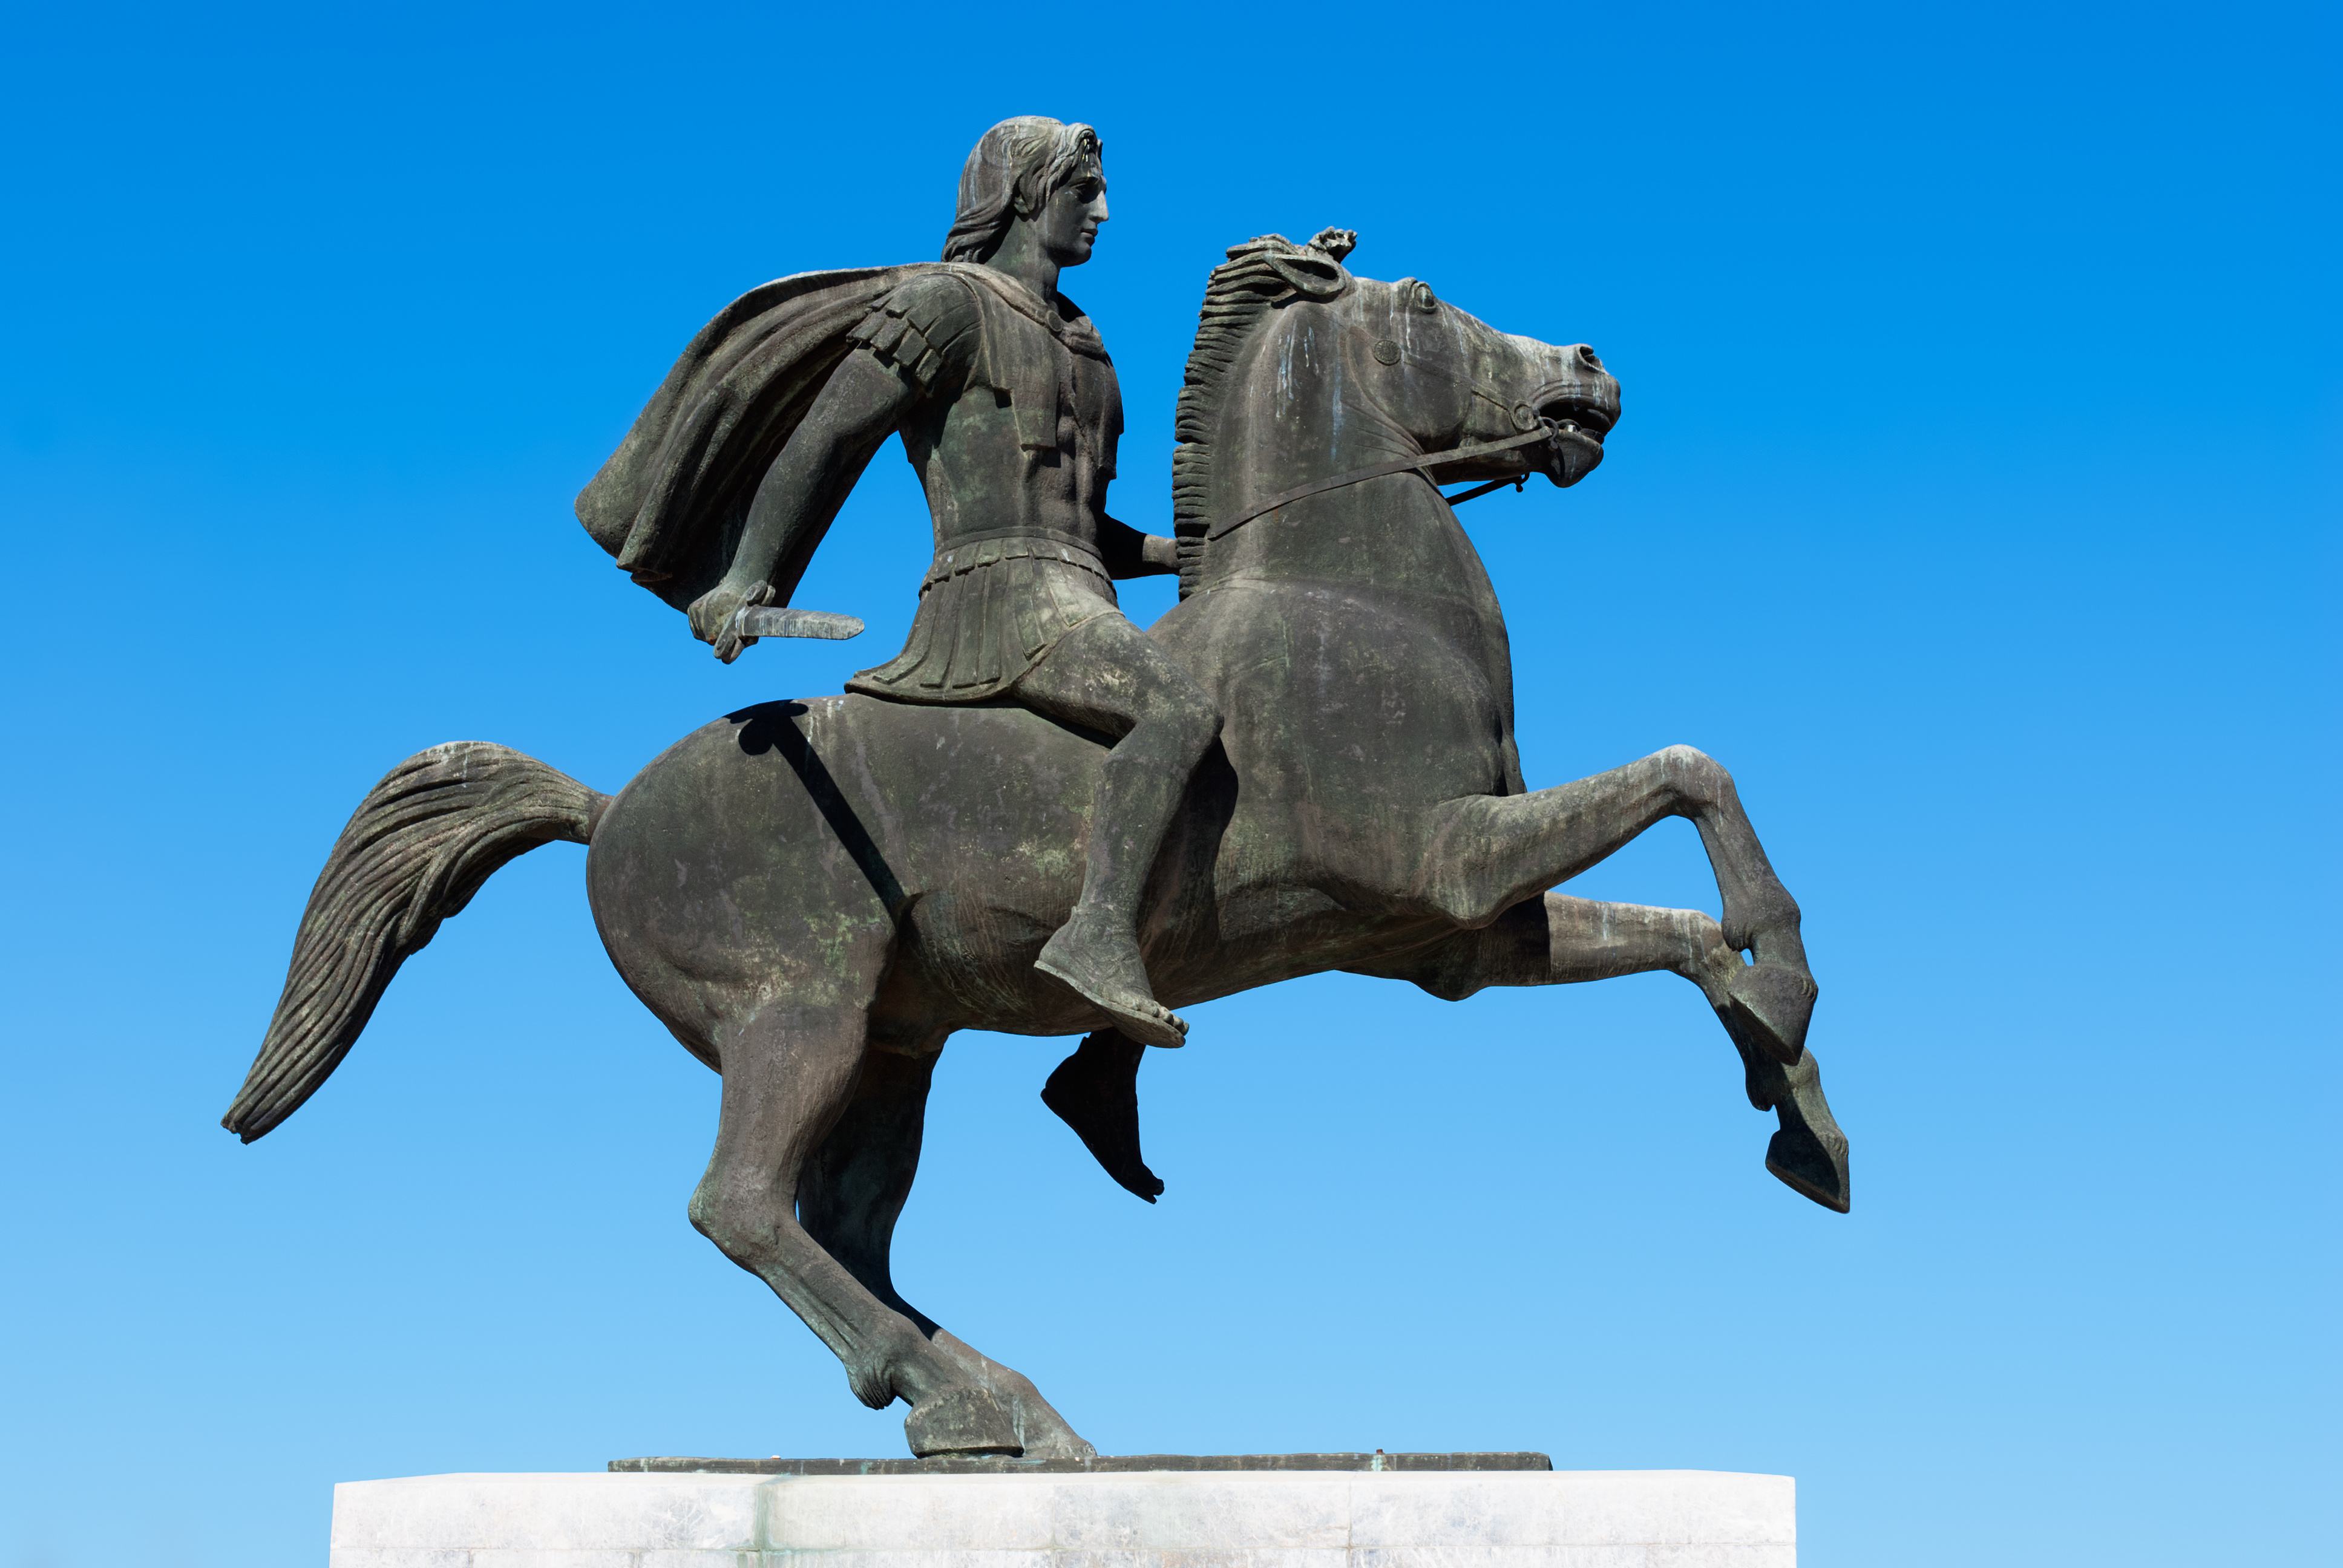 Statue of Alexander the Great at Thessaloniki, Greece. Image courtesy of Adobe Stock.